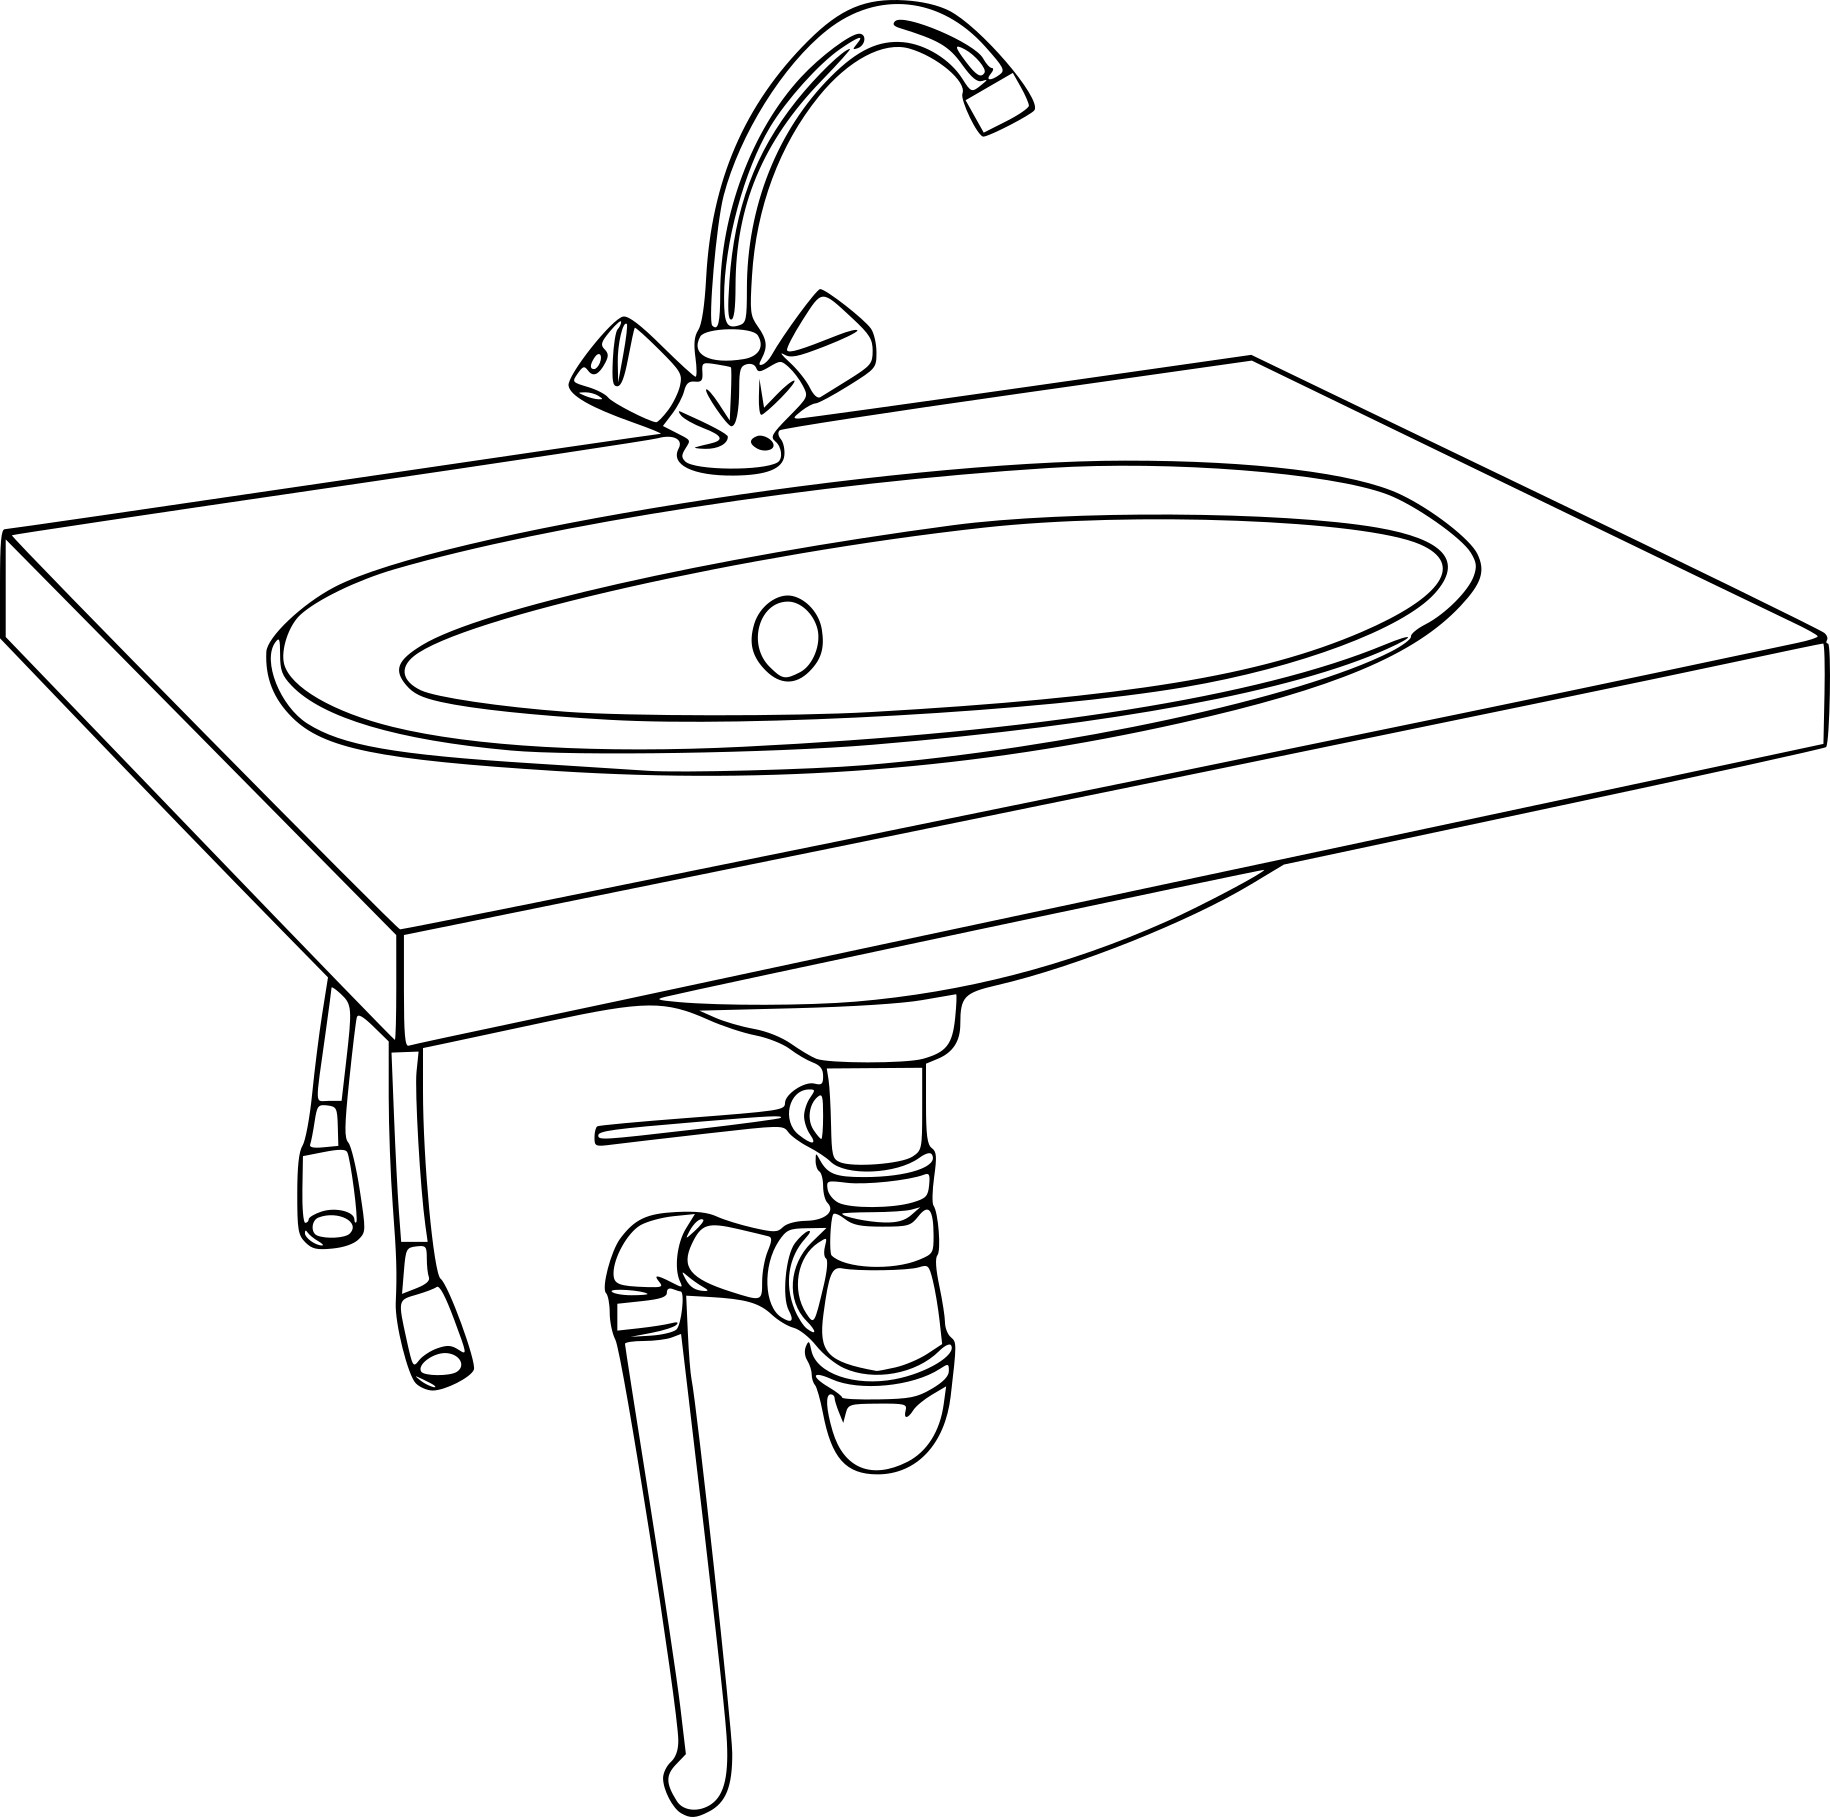 coloriage lavabo dessin imprimer sur coloriages info. Black Bedroom Furniture Sets. Home Design Ideas